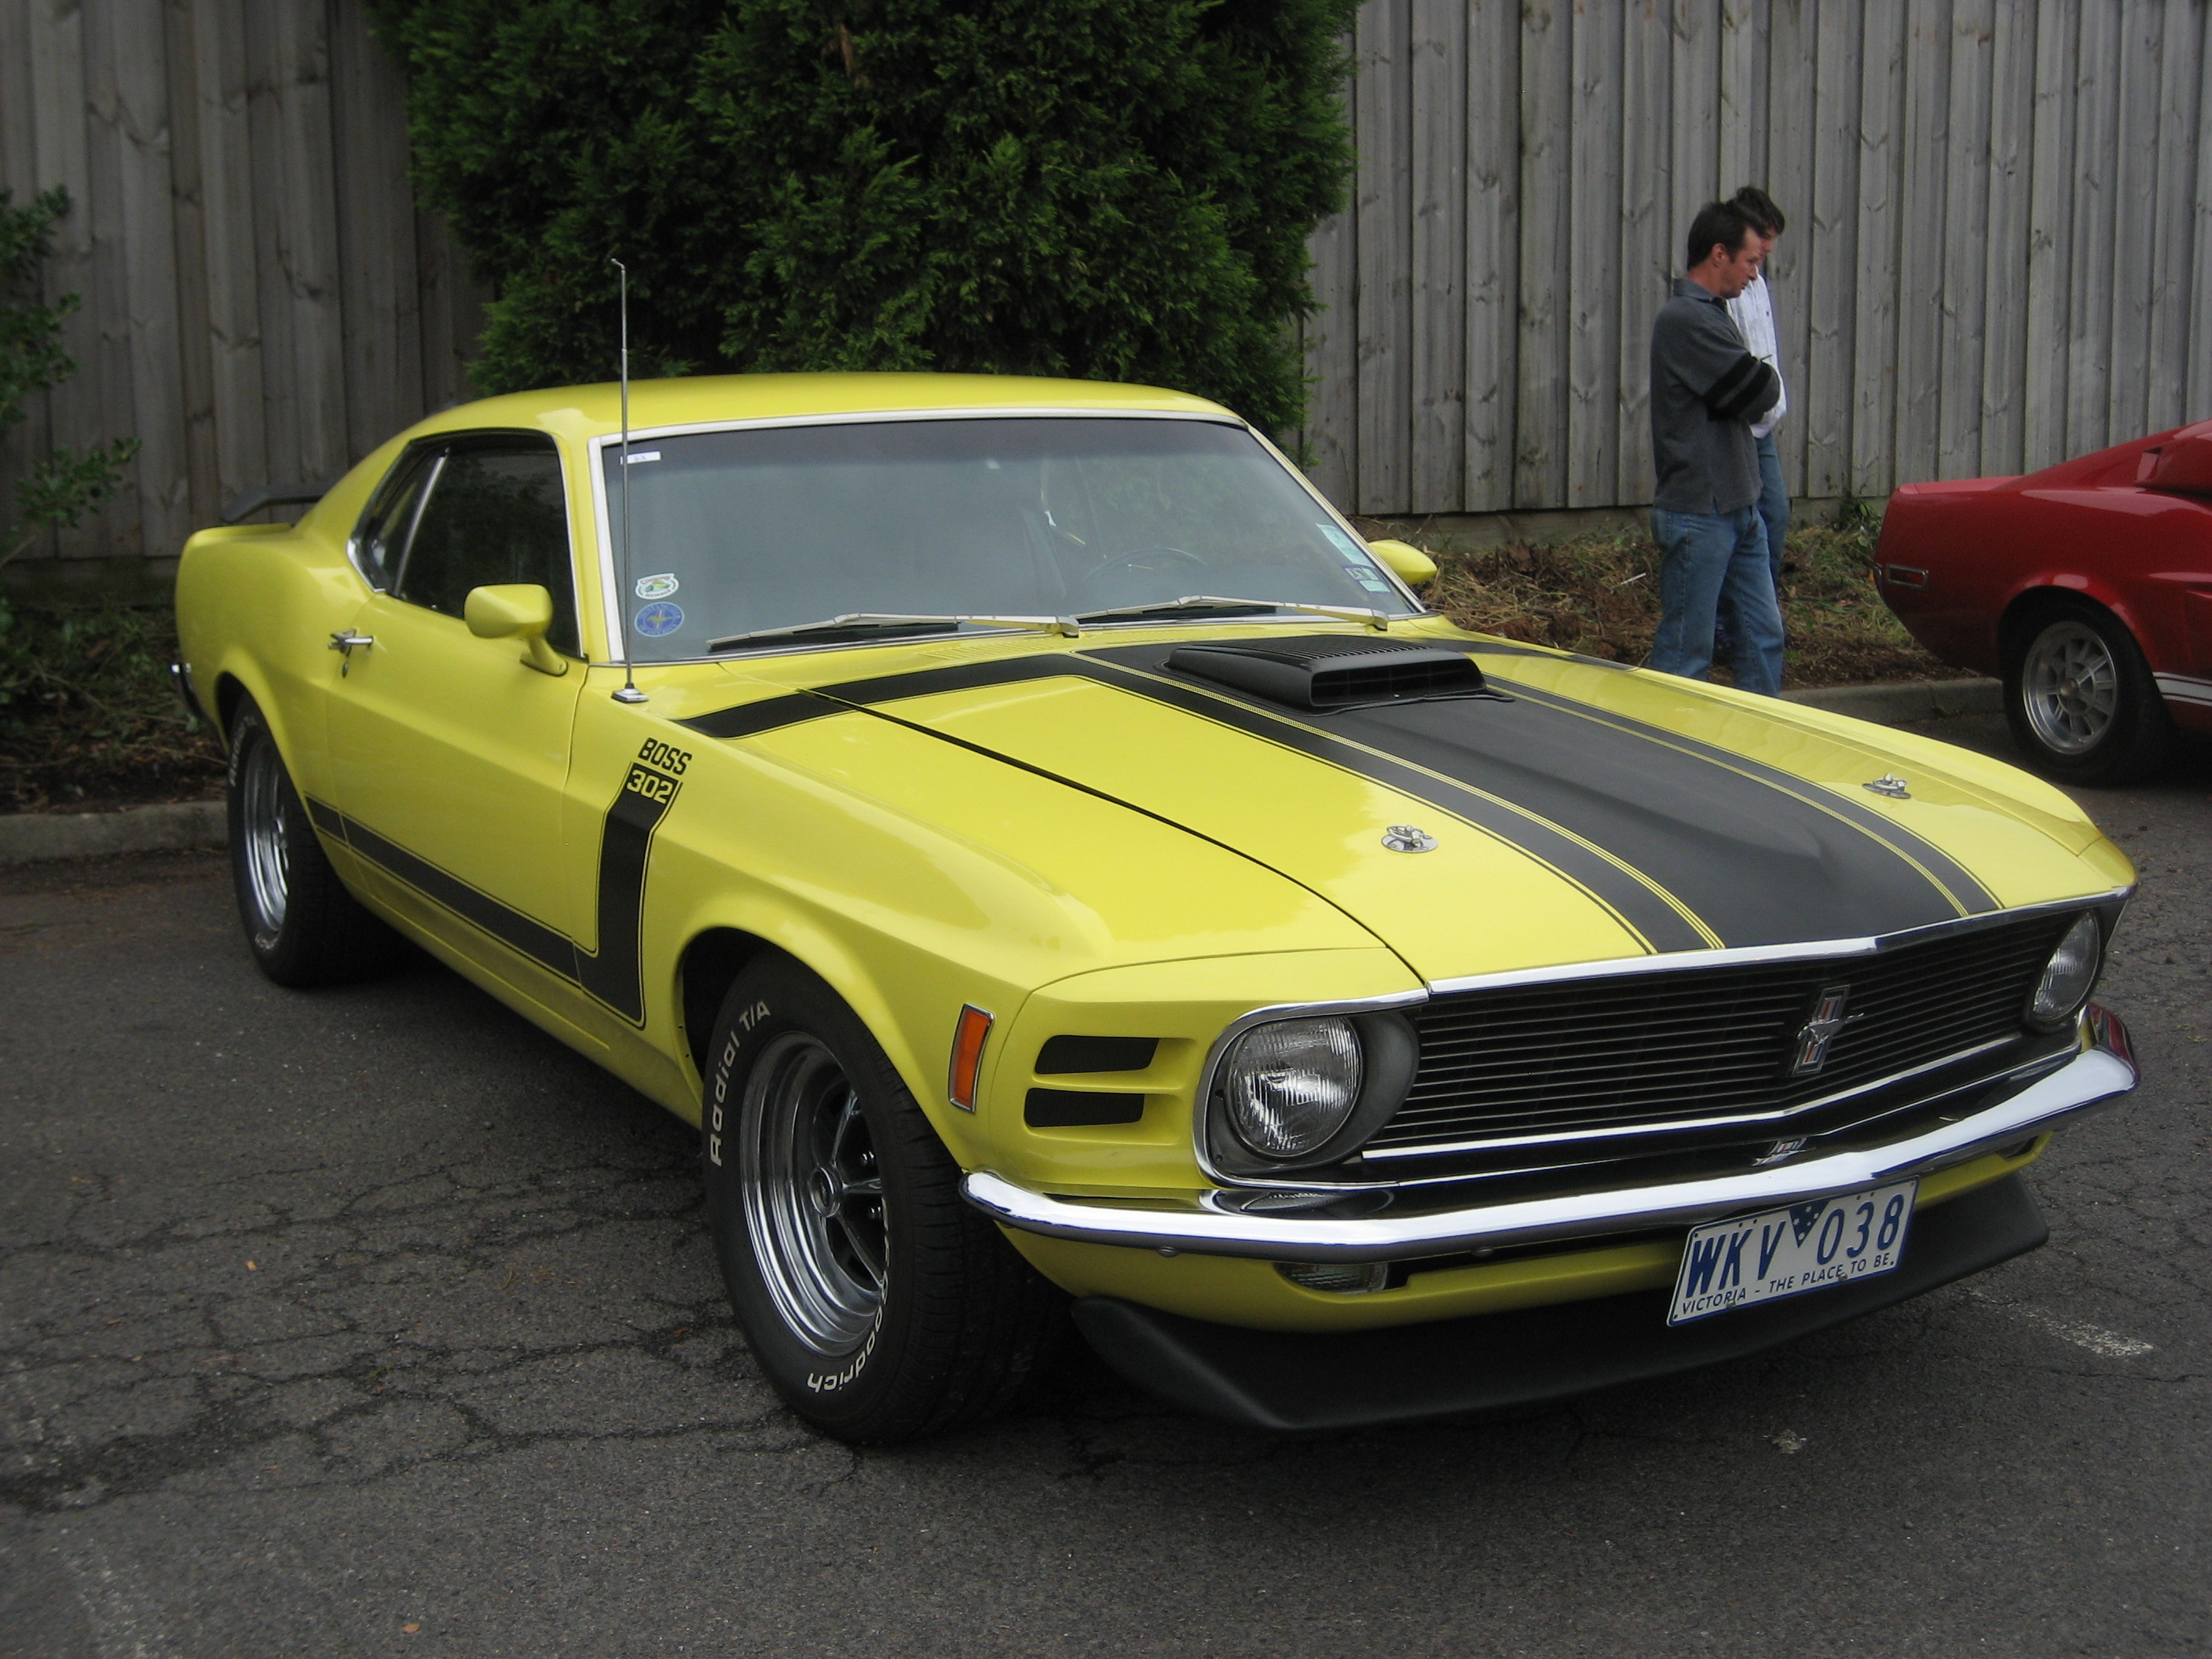 Fileford mustang boss 302 1970 jpg